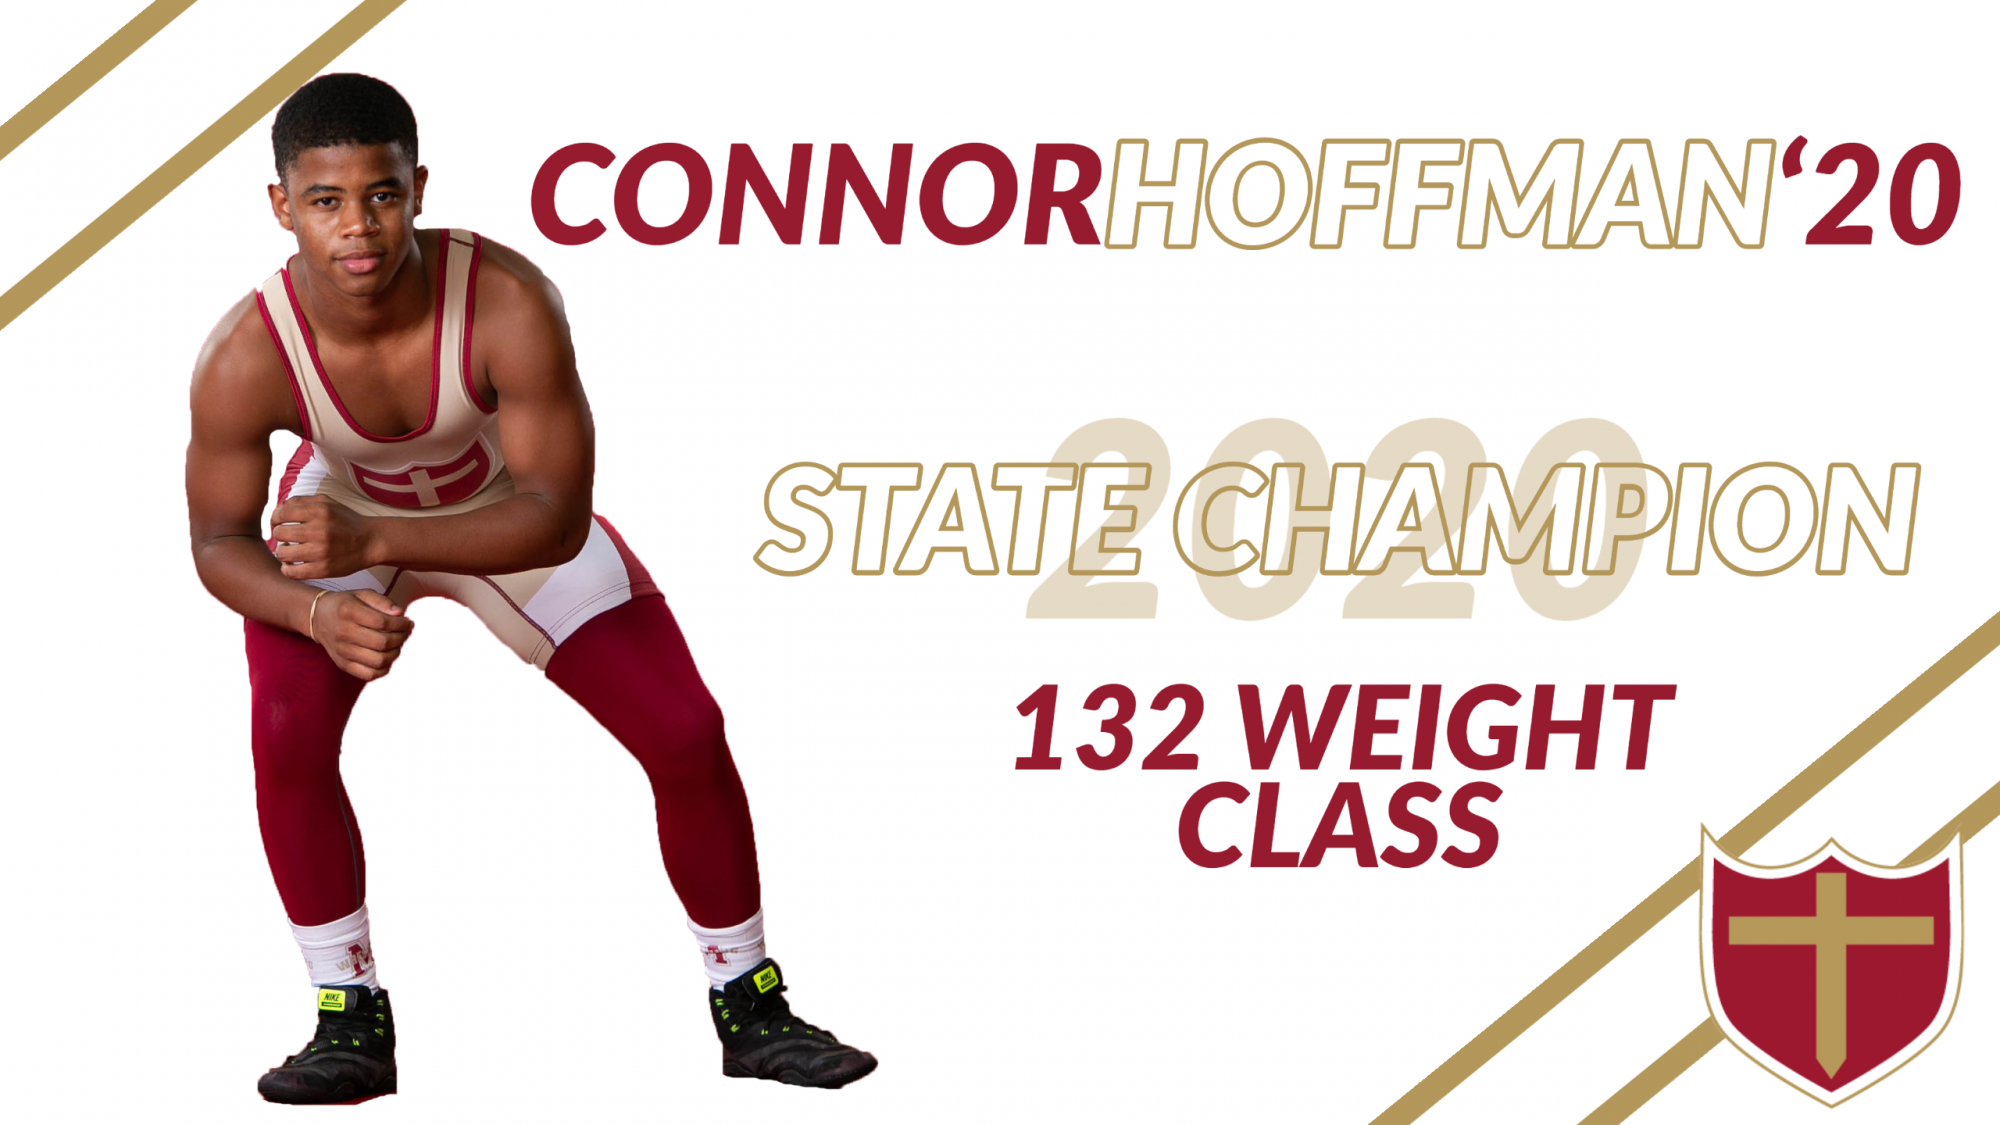 Connor Hoffman '20 State Champ